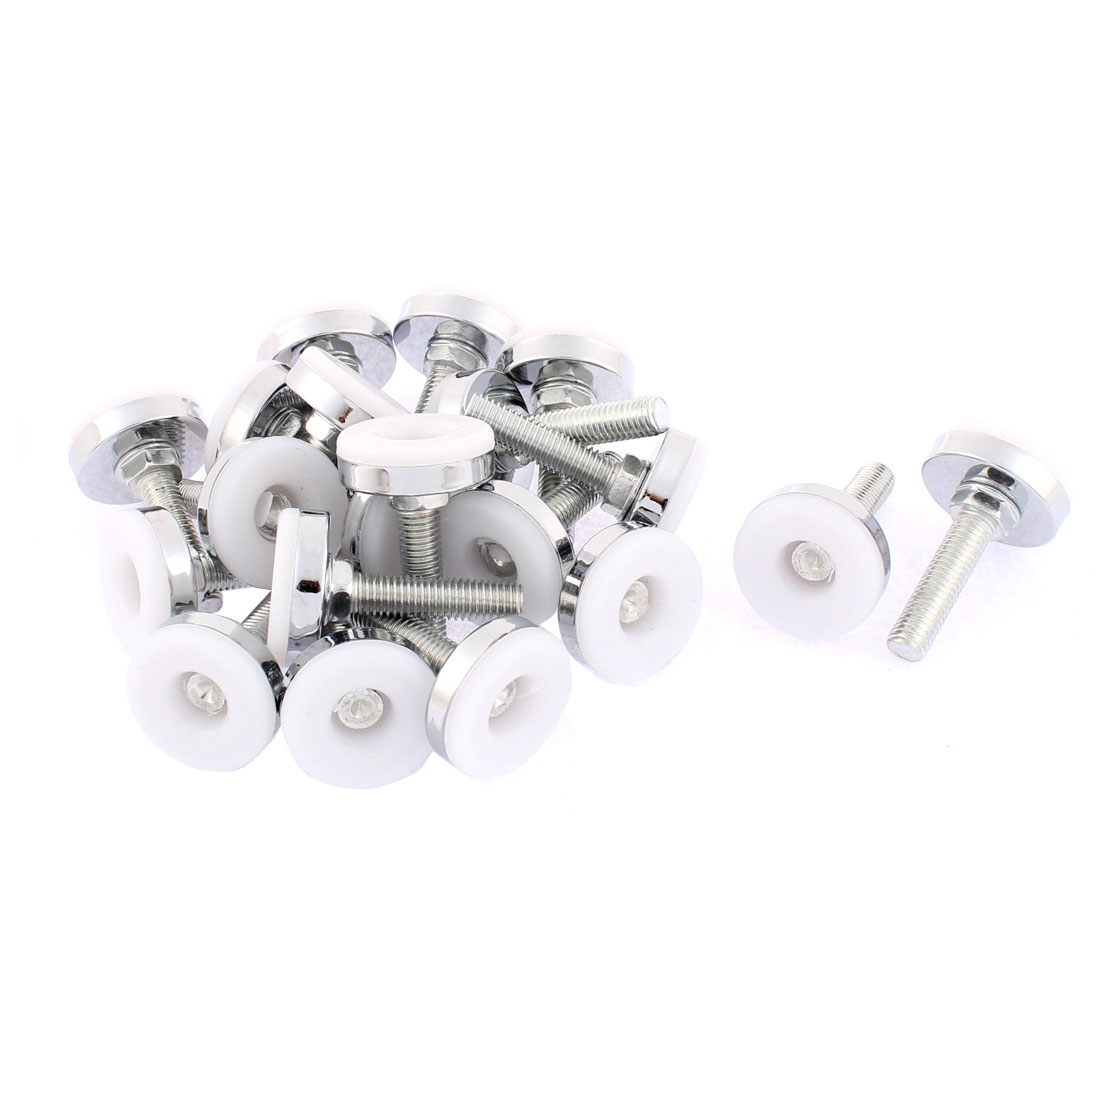 Furniture Screw On Type Glide Leveling Foot Adjuster M10 x 37mm 20pcs